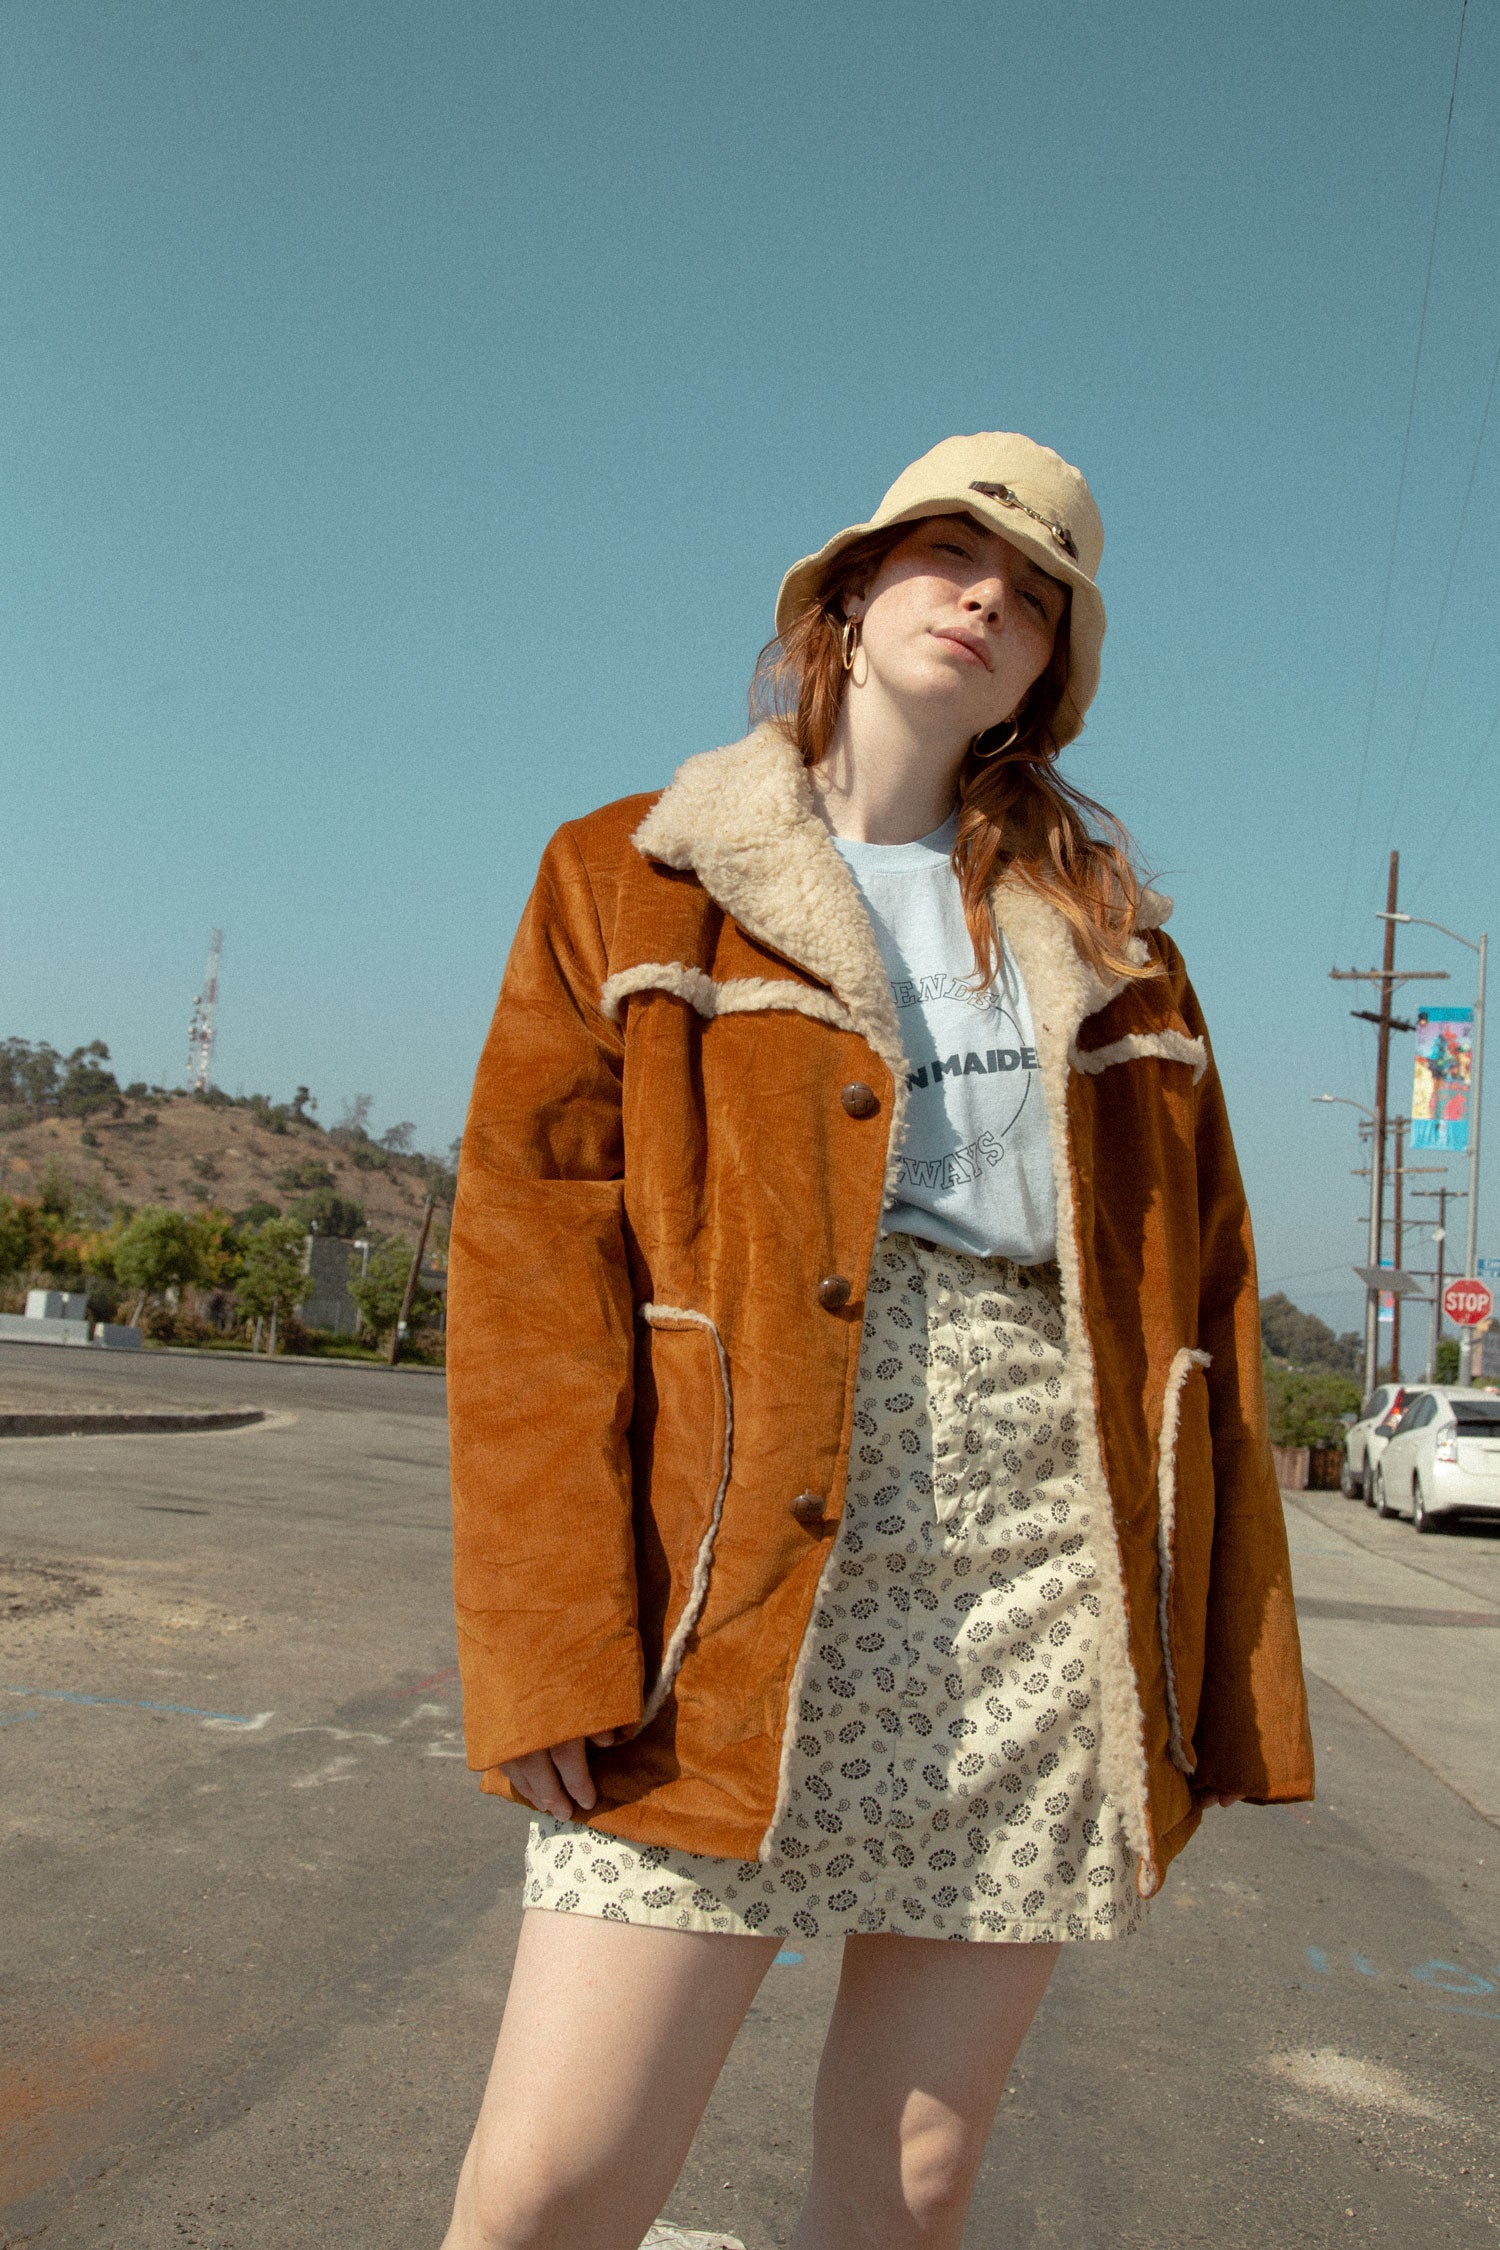 Model wearing vintage bucket hat, 90s fur lined corduroy jacket, 70s single stitch YMCA shirt, and paisley skirt.  Standing in the road, in front of blue sky.